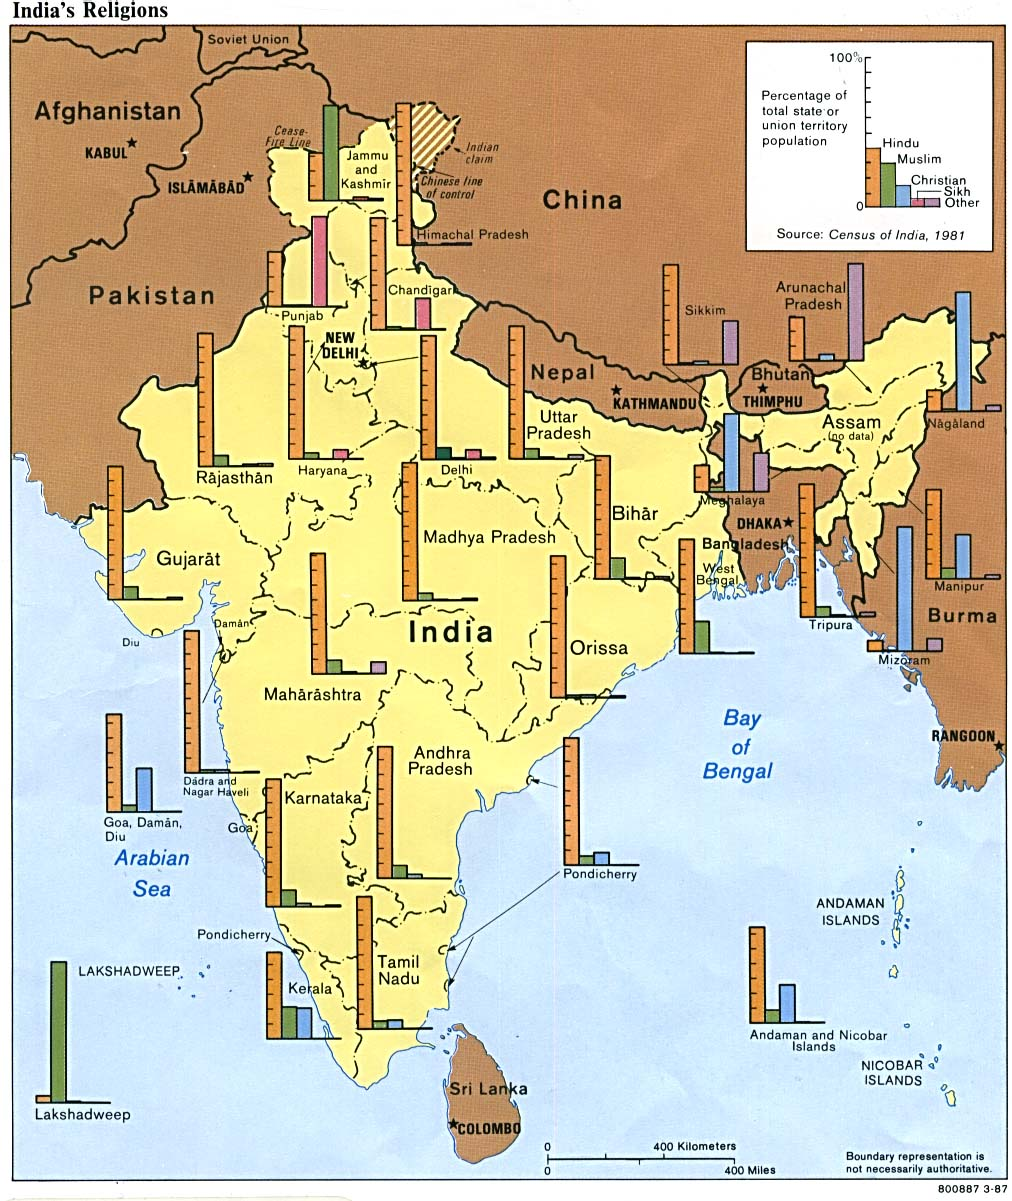 Map Of India , India's Religions 1987 (224K)